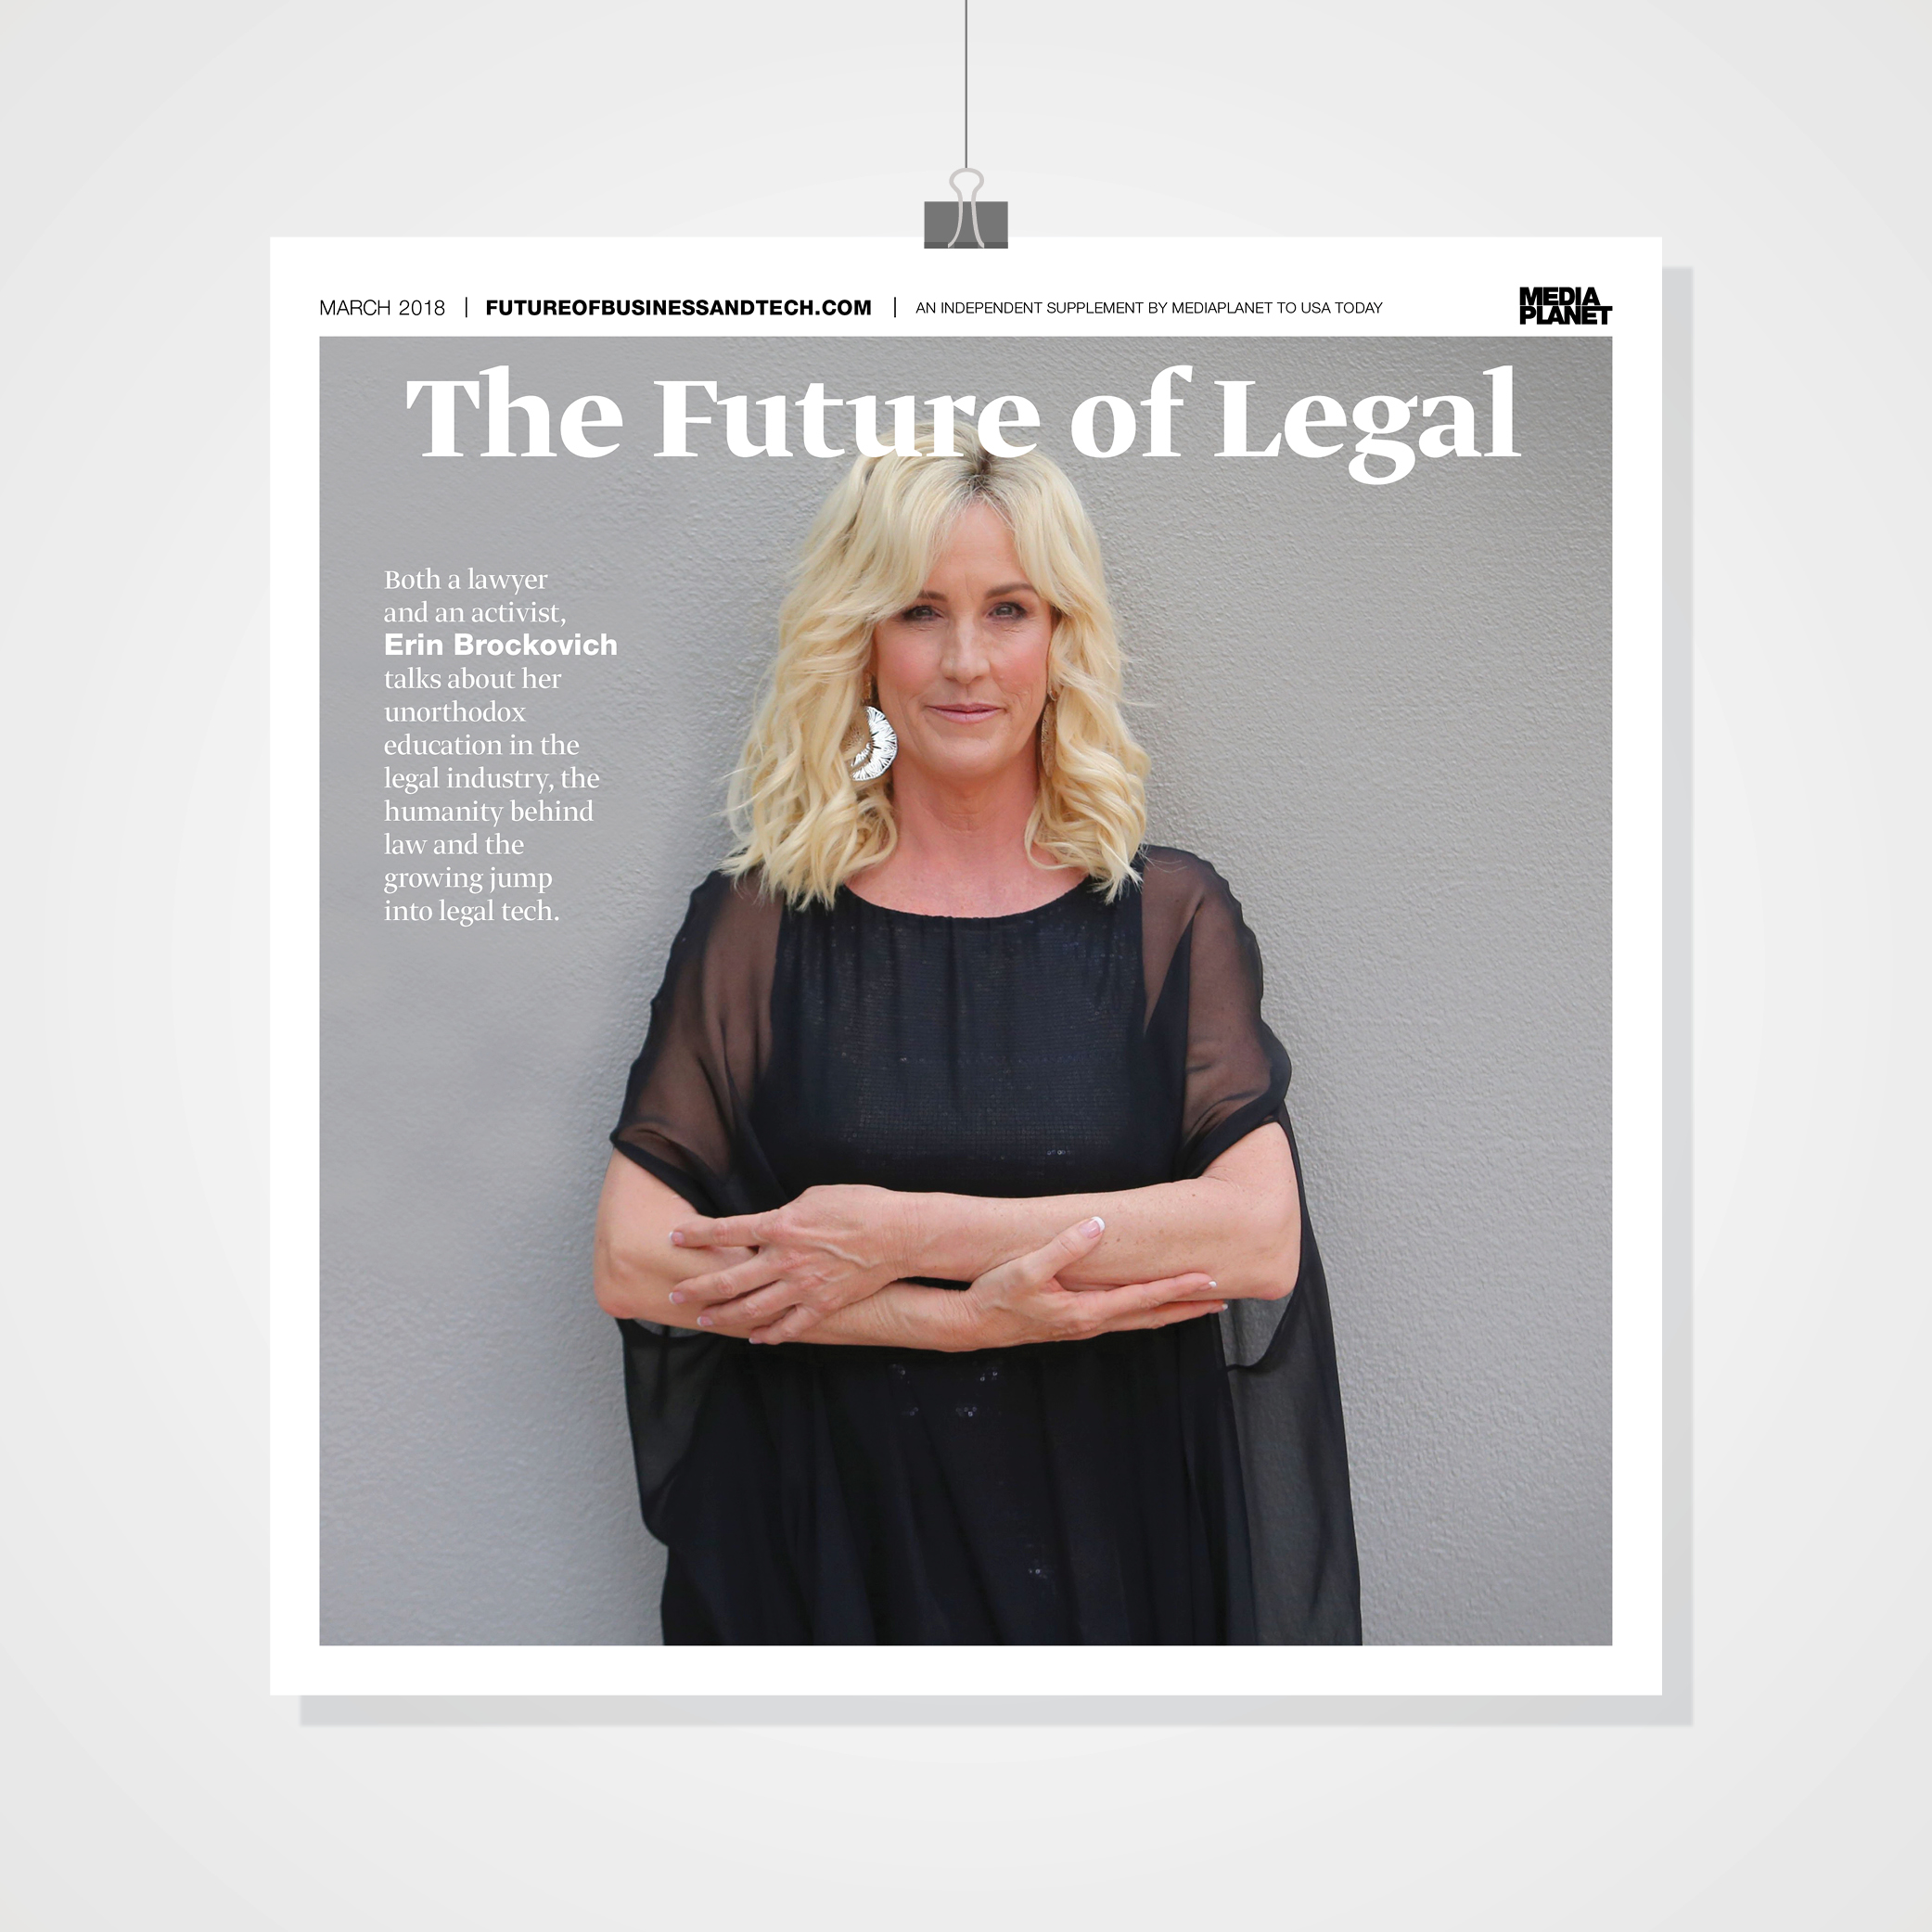 Cover Image of The Future of Legal Publication featuring Erin Brockovich